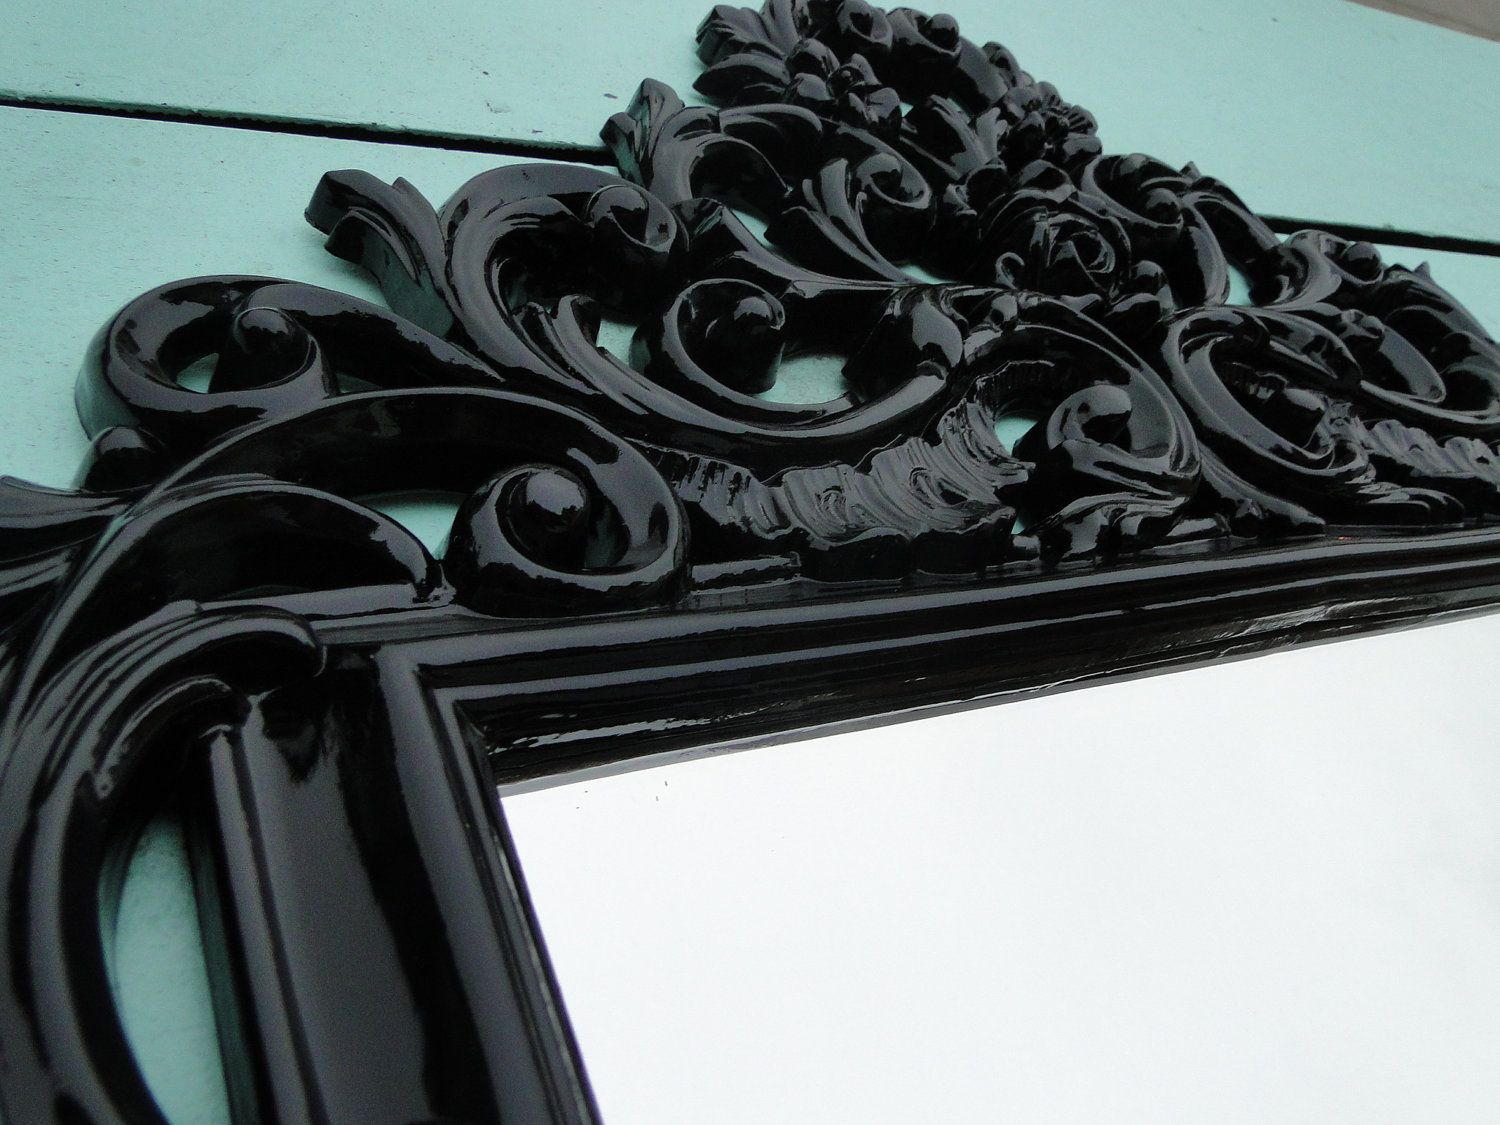 Large ornate vintage gothic mirror wall mirror glossy black frame large ornate vintage gothic mirror wall mirror glossy black frame hollywood regency paris apartment french country romantic gatekeeper amipublicfo Gallery